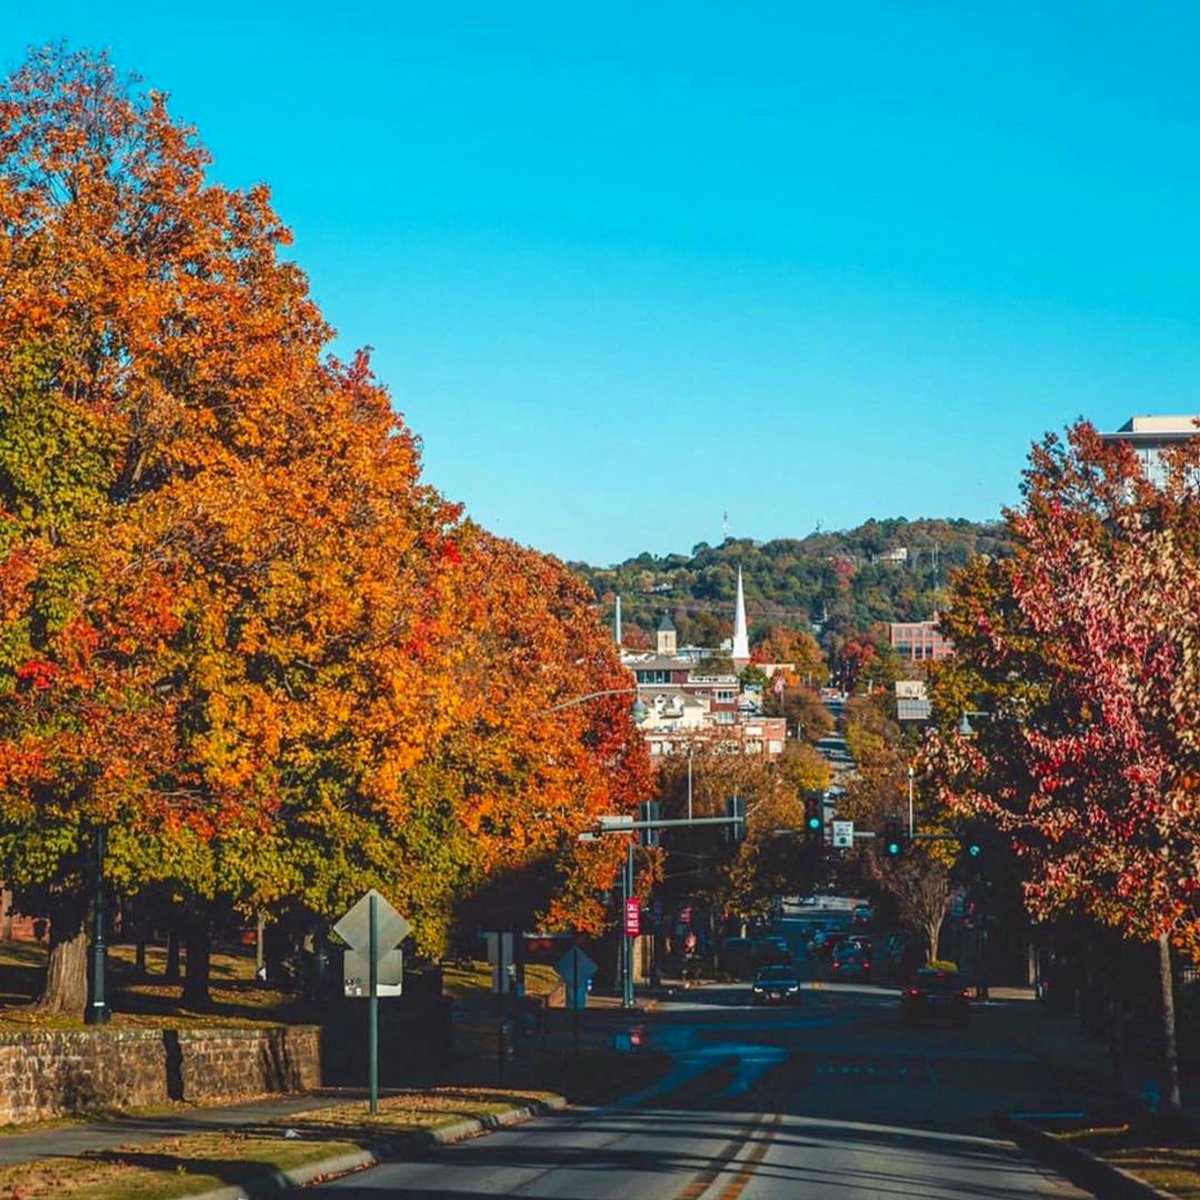 Happy First Day of Fall from Fayetteville! 🙌🍂🌾🍁🌻  Keep your eyes open and plan that trip for leaf peeping season in the ozark mountains. Usually the last week of October and first week of November are peak fall color times.